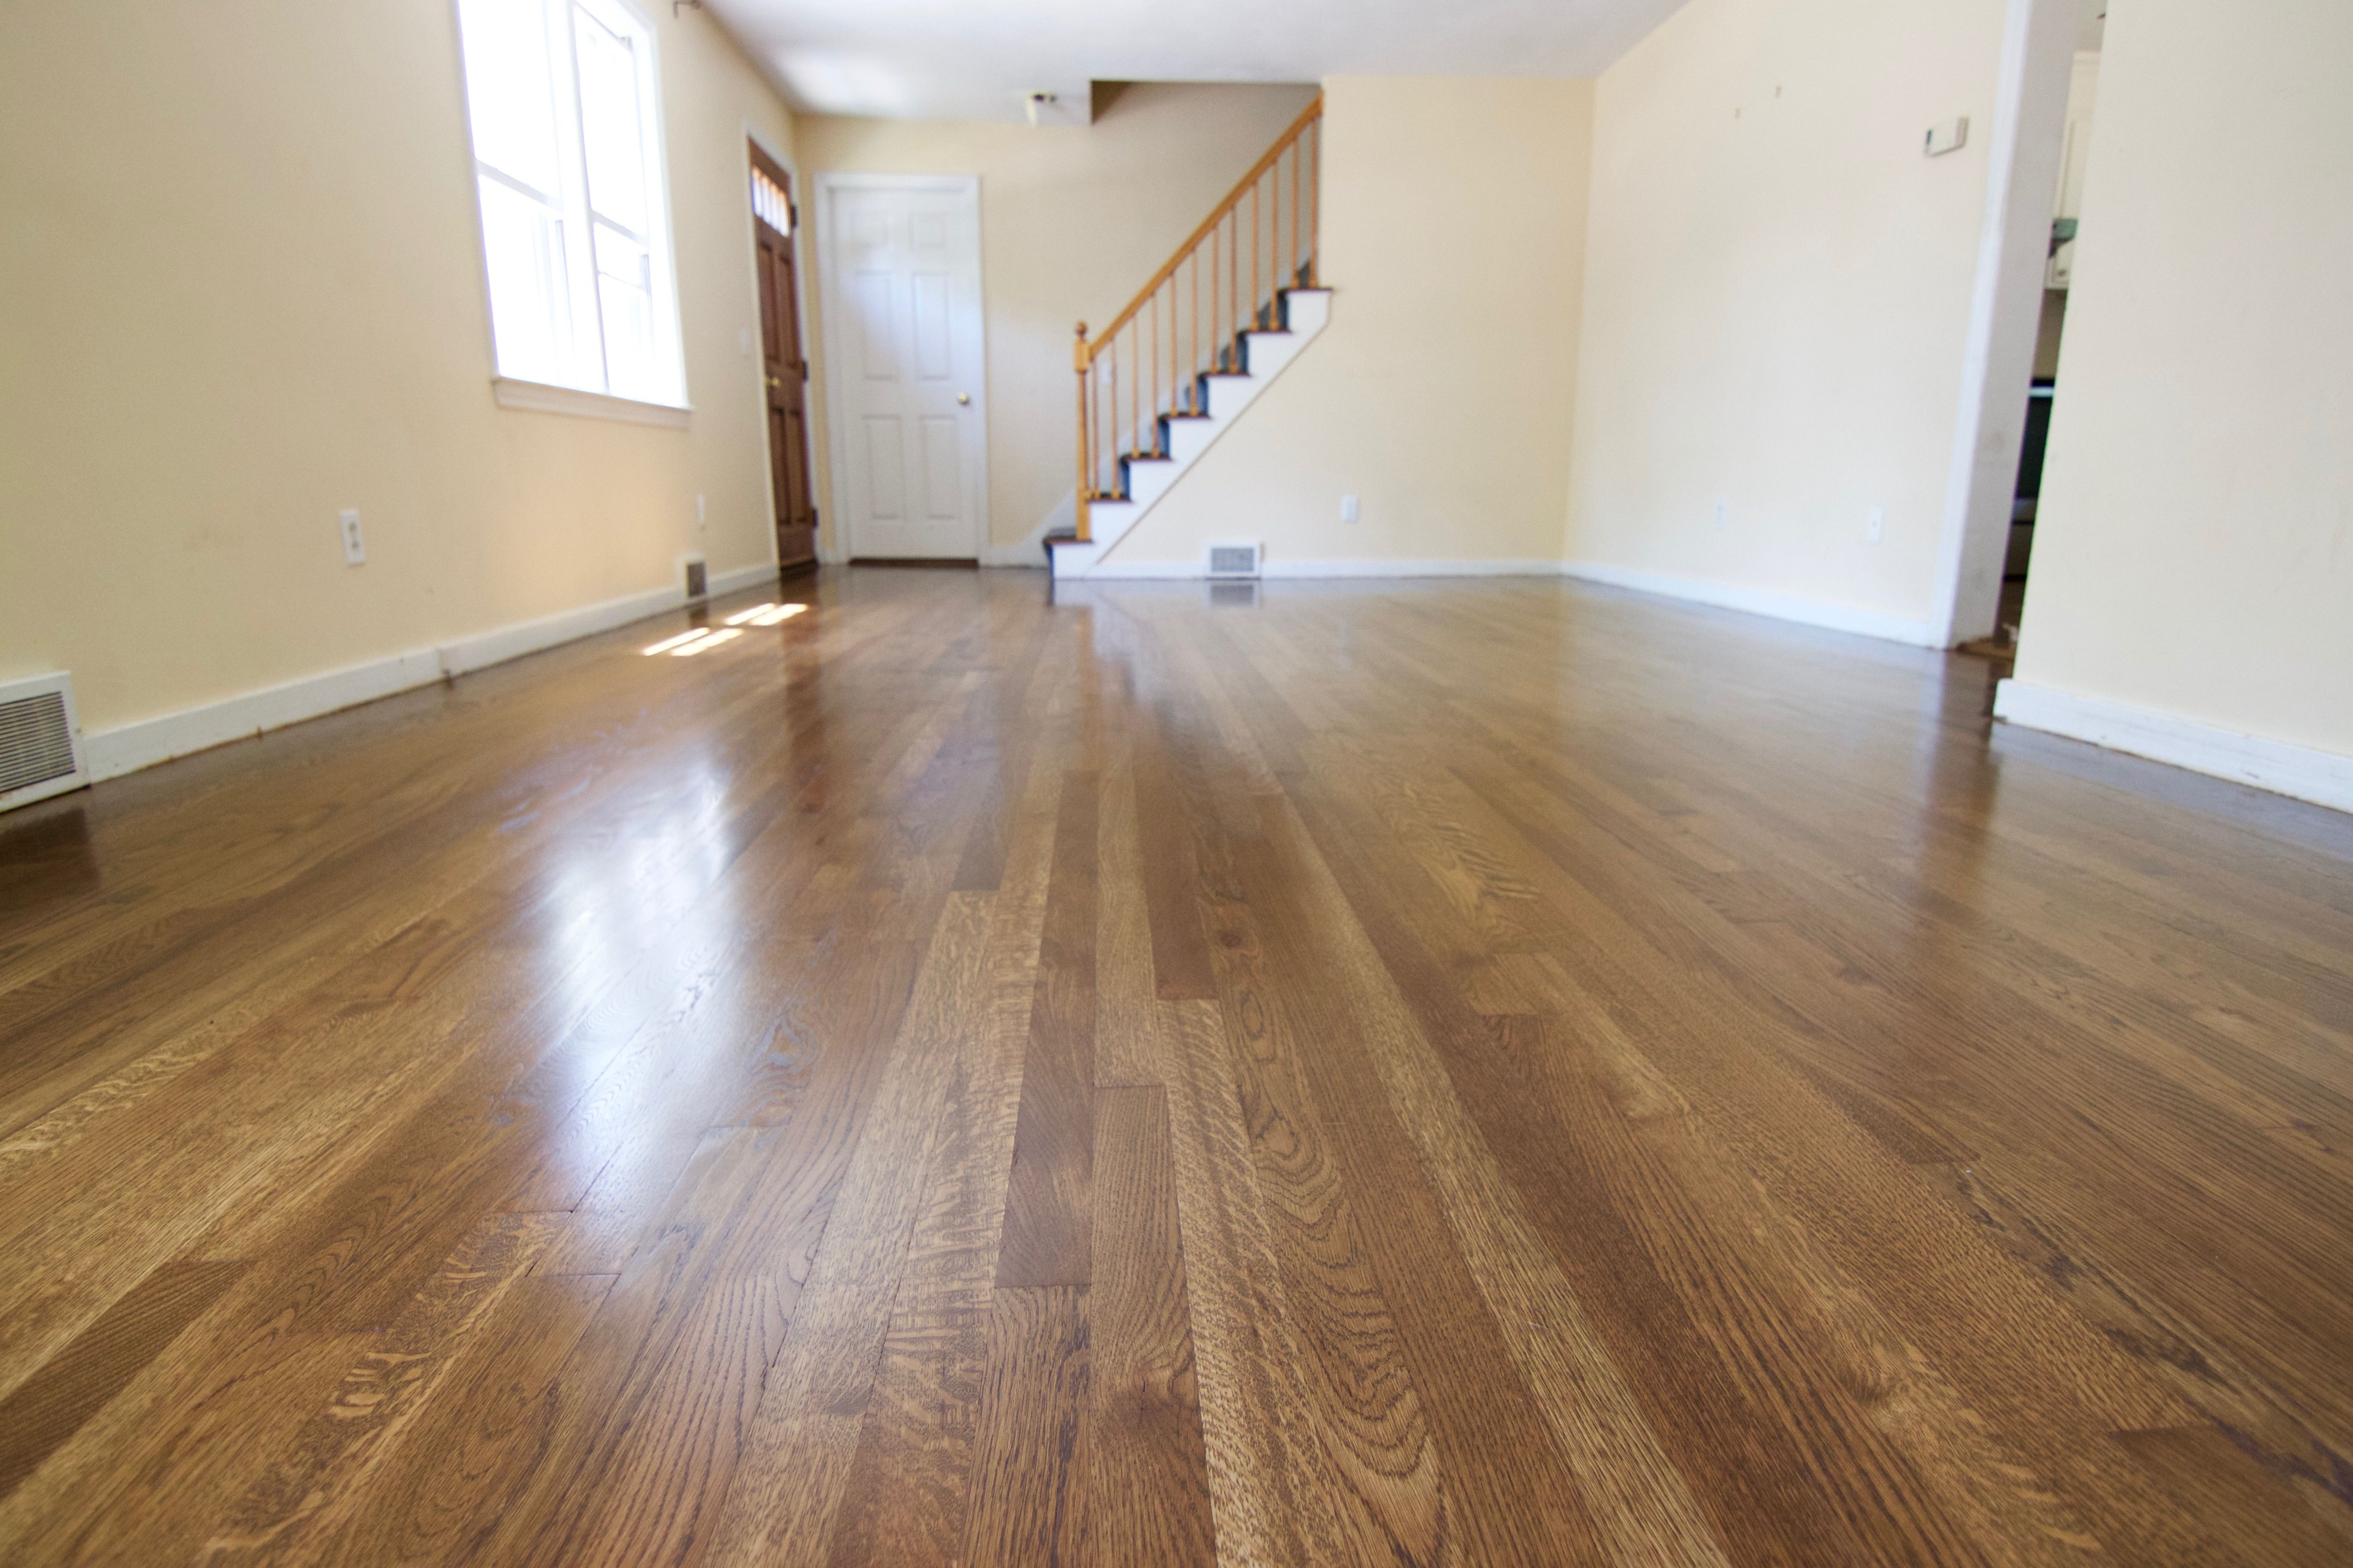 how to use bona hardwood floor cleaner of fast floors white oak hardwood flooring stained with bona medium for fast floors white oak hardwood flooring stained with bona medium brown dri